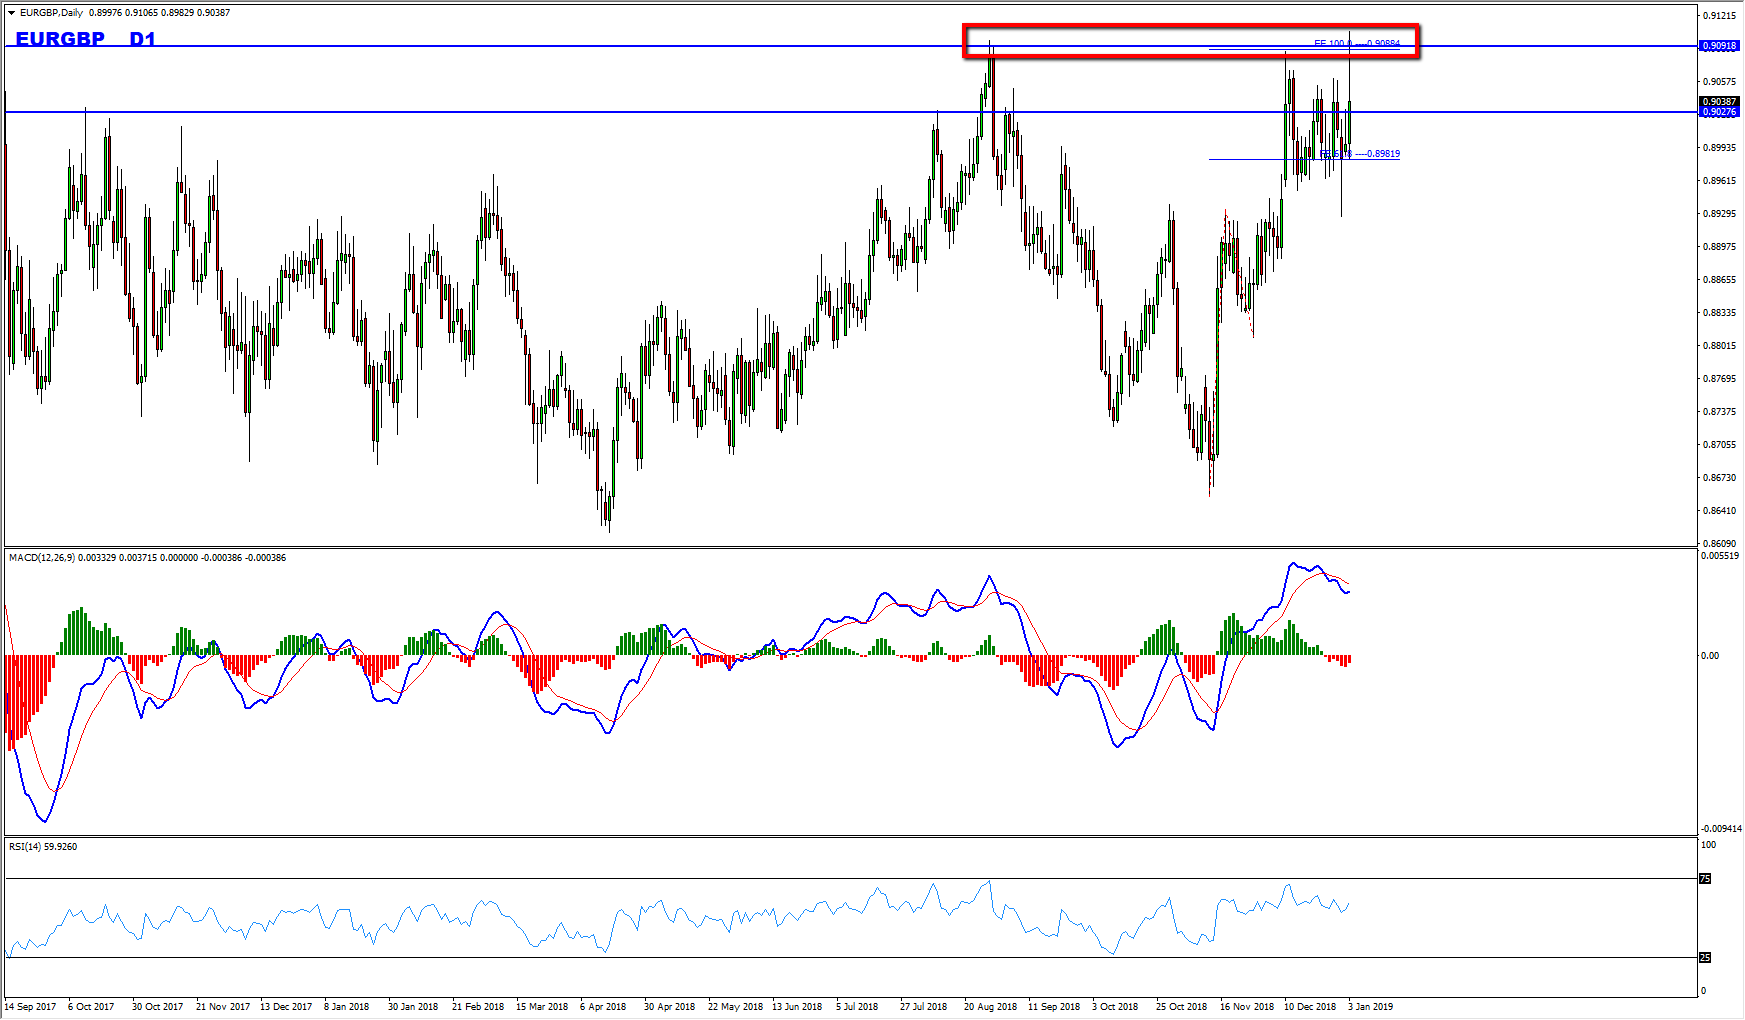 EURGBP Range Provides Bearish Opportunity